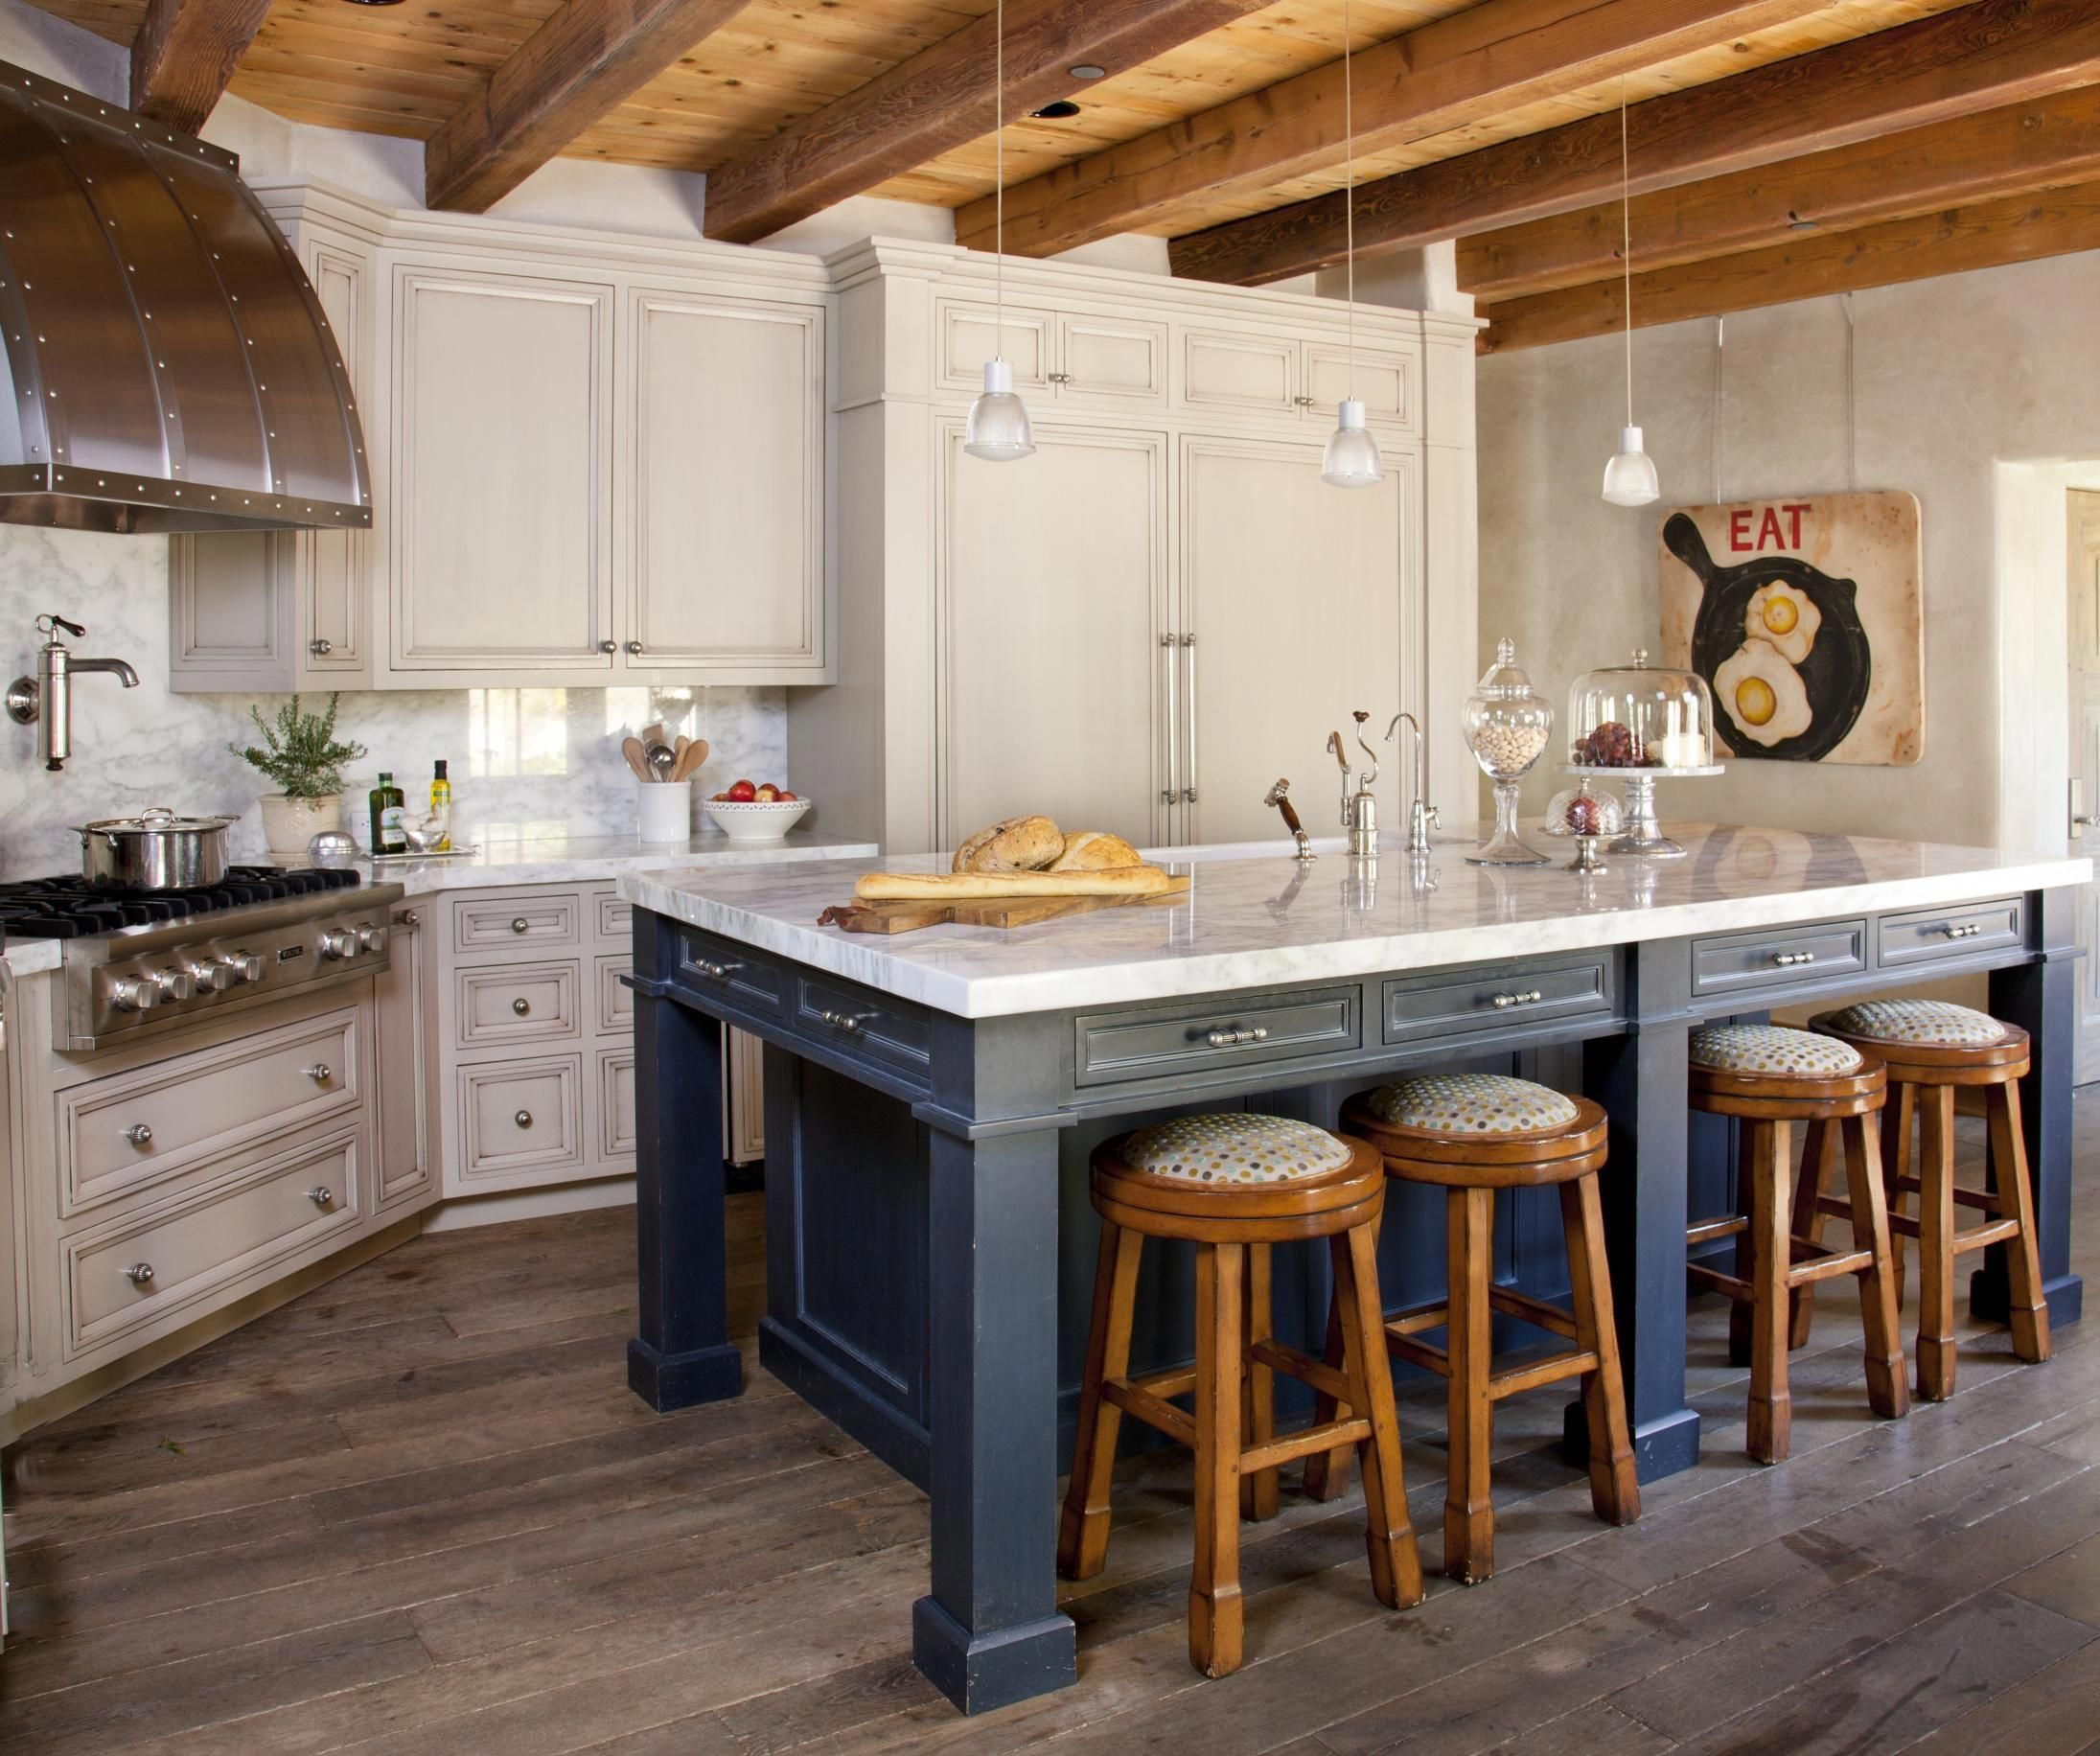 Antiqued kitchen cabinets and Calacatta marble countertops were